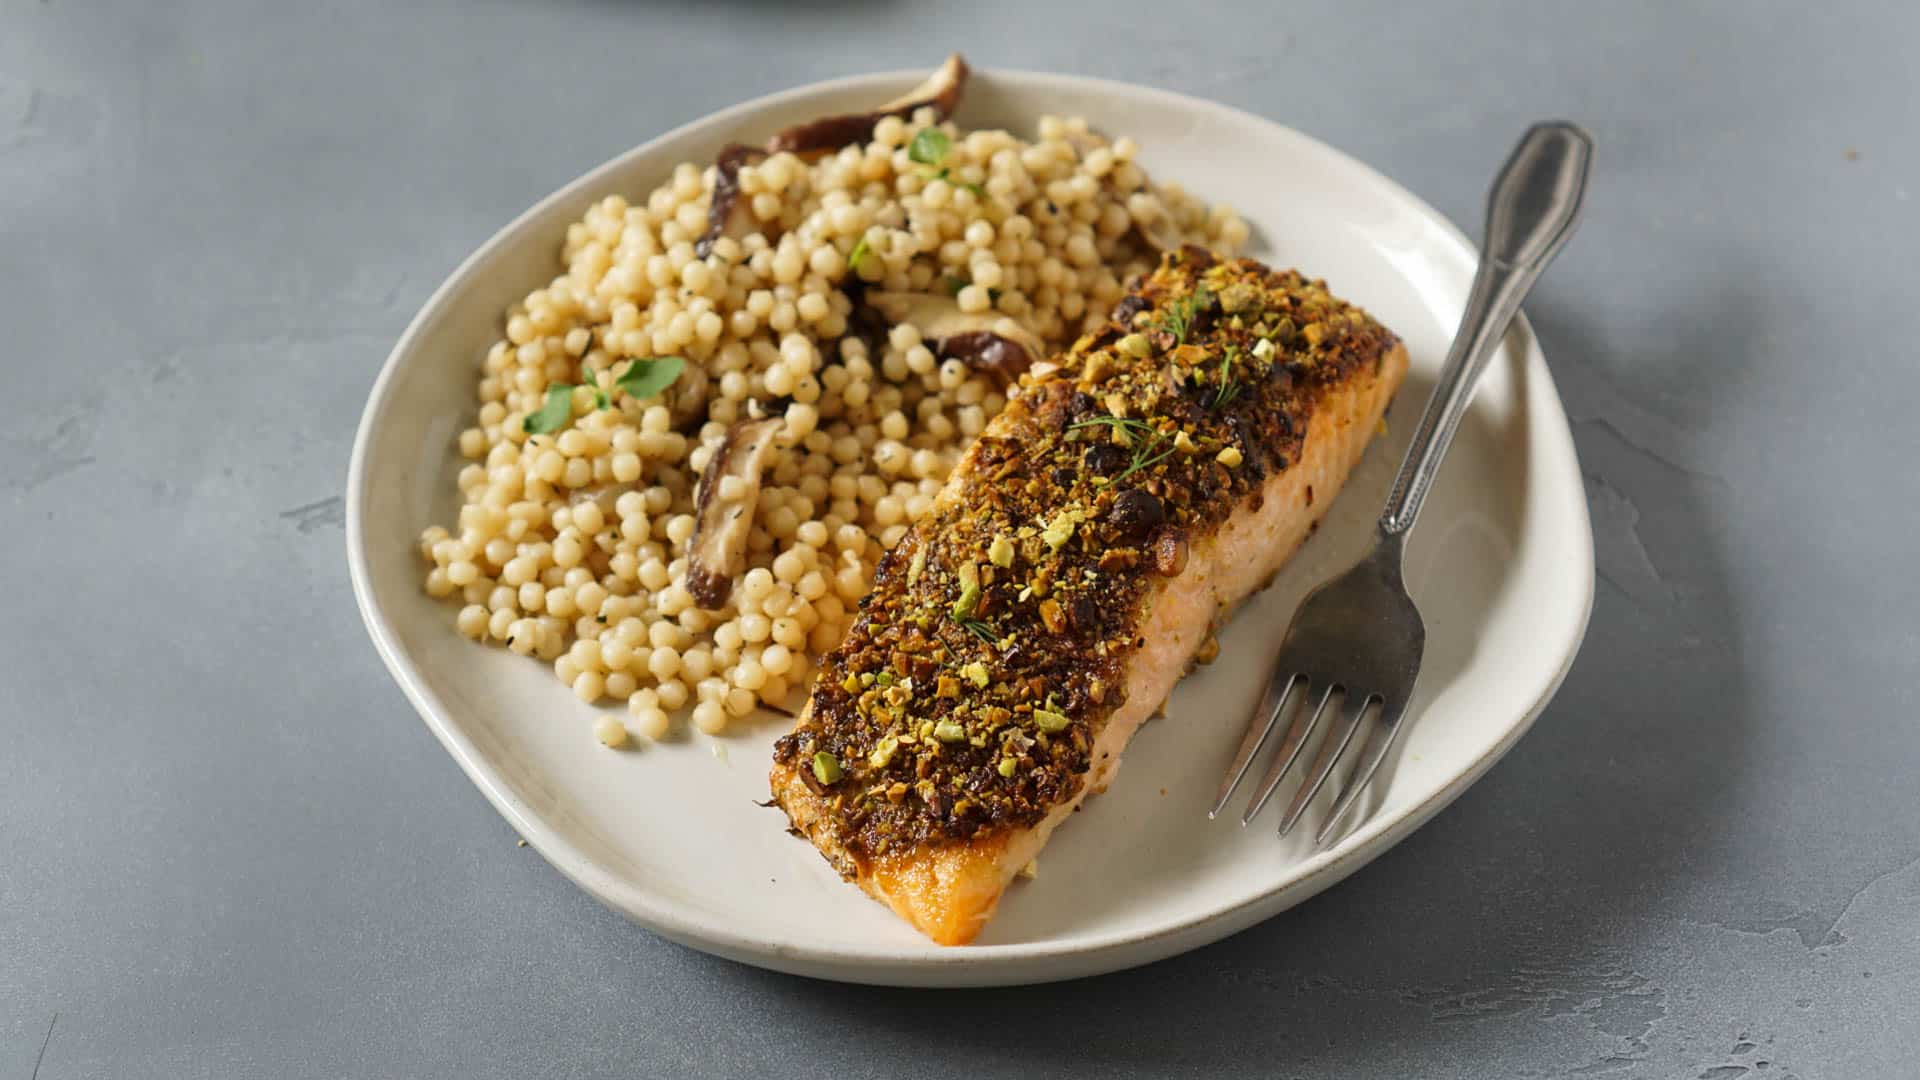 Pistachio Crusted Air Fryer Salmon